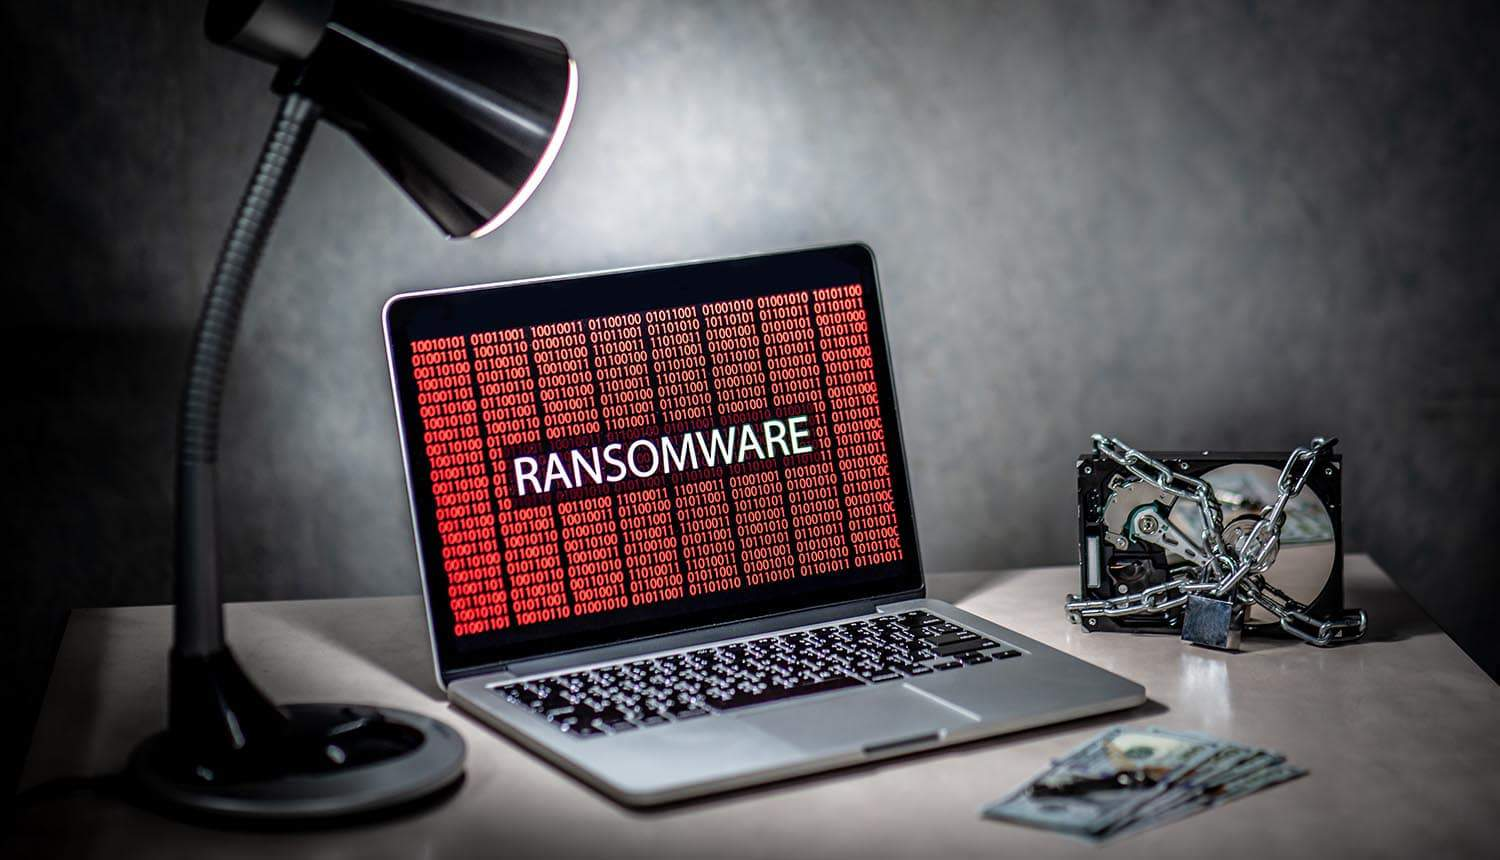 Hard disk file locked by chain and padlock with binary ransomware on laptop monitor showing ransomware payments